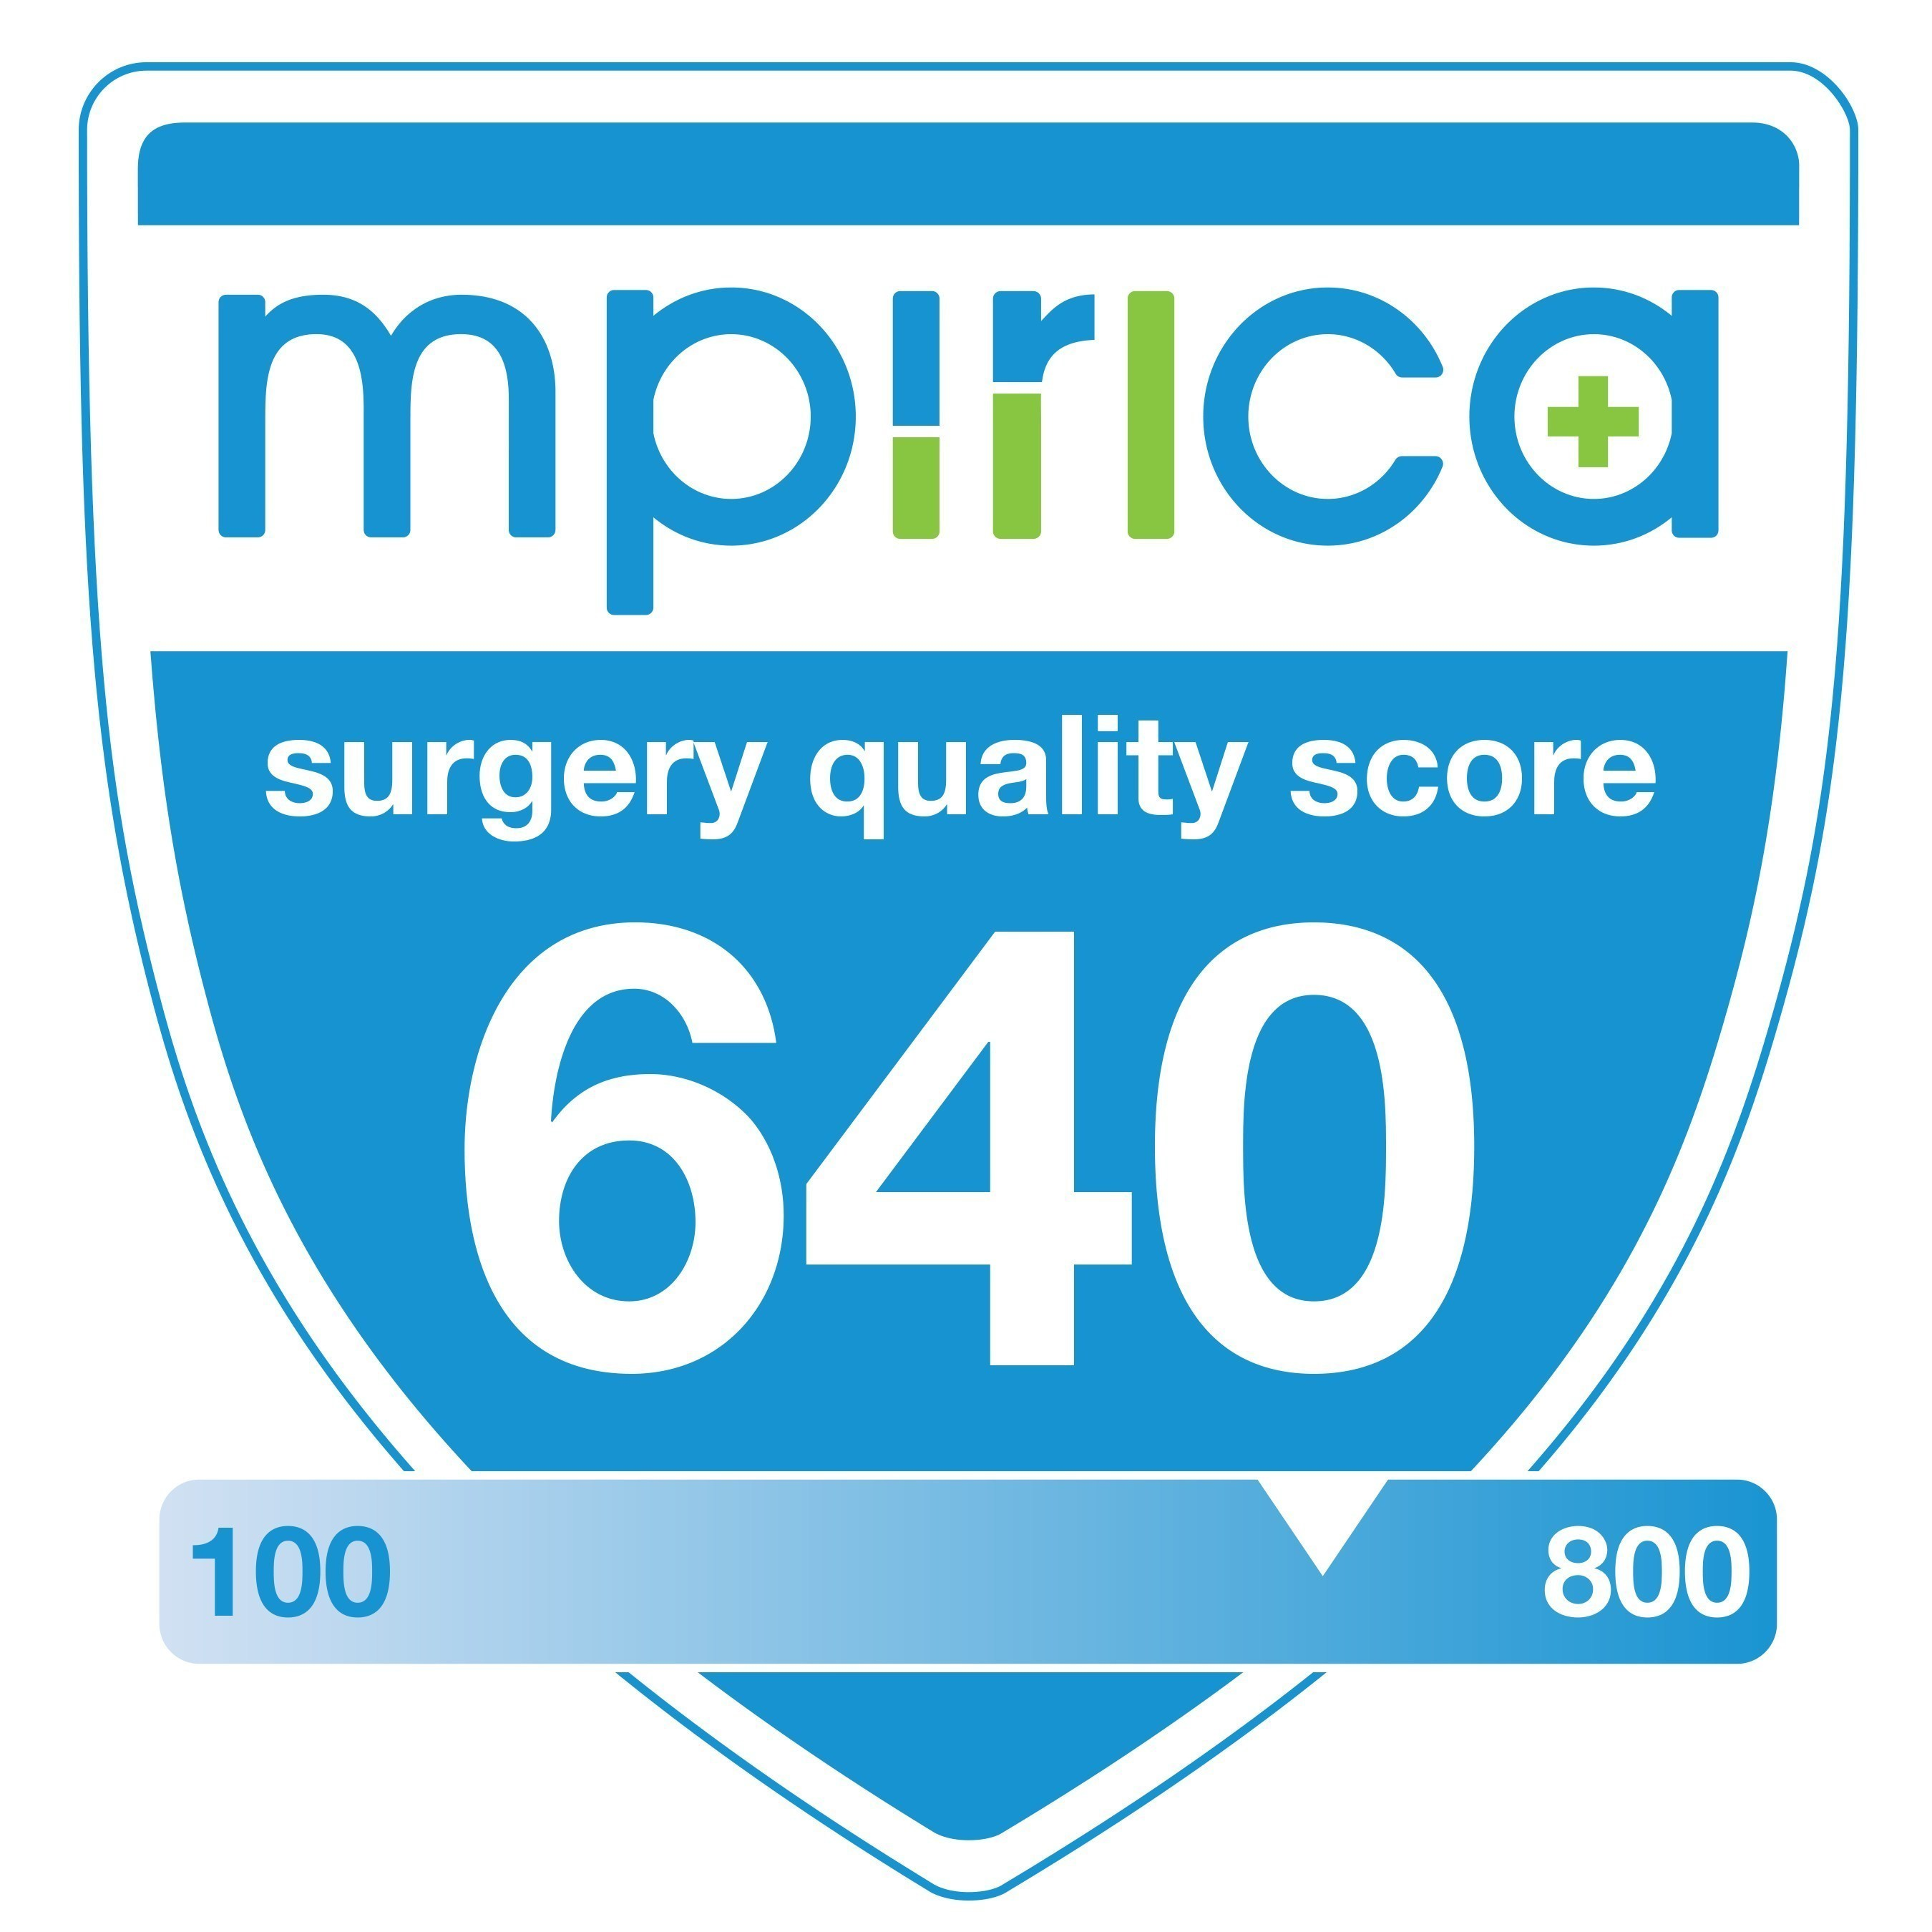 MPIRICA Quality Score measures surgery clinical outcomes to help patients make informed decisions. It was ...